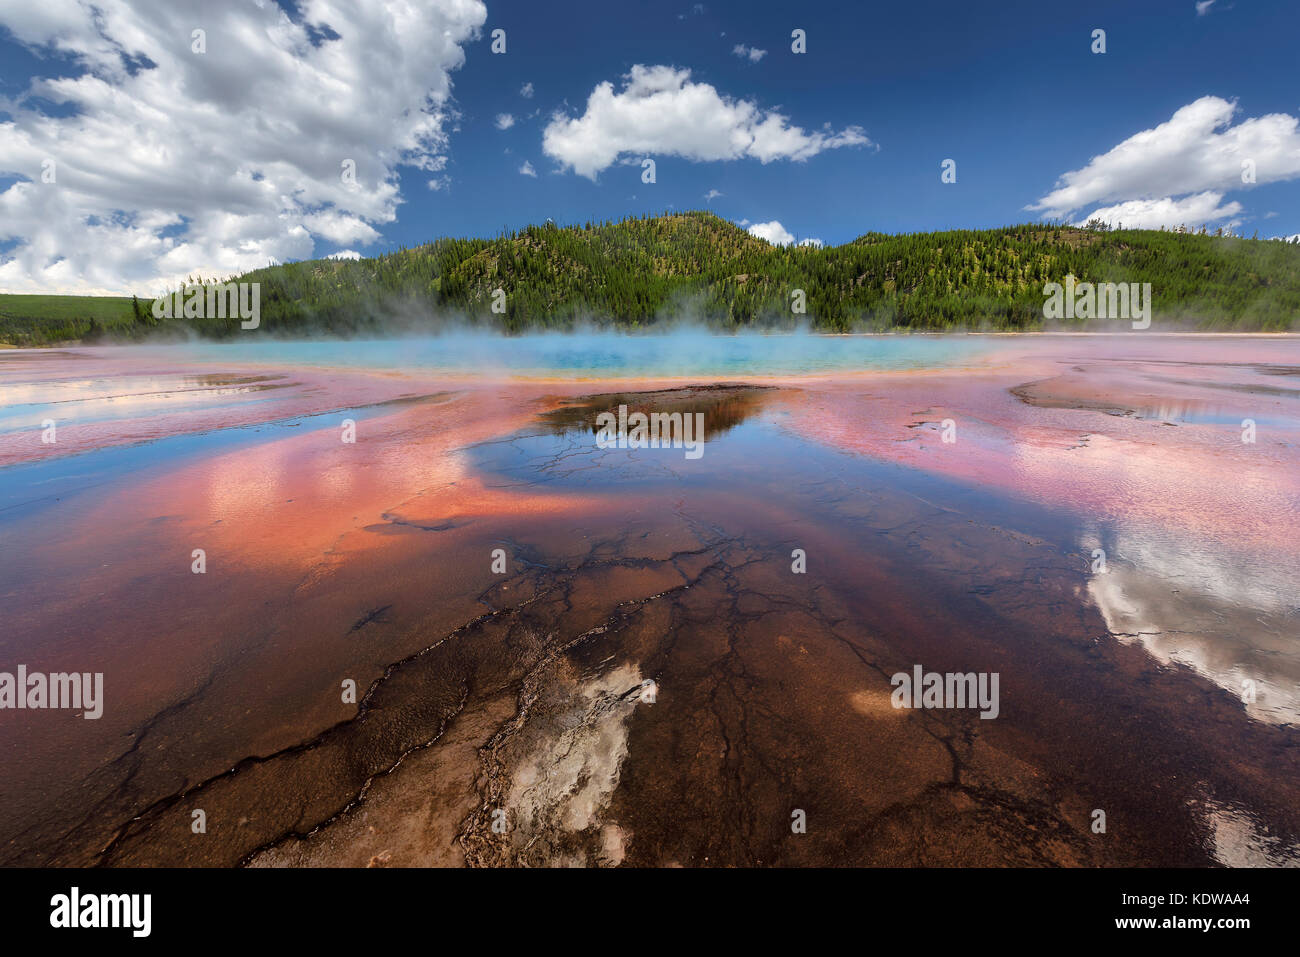 Grand Prismatic Spring in Yellowstone National Park Photo Stock